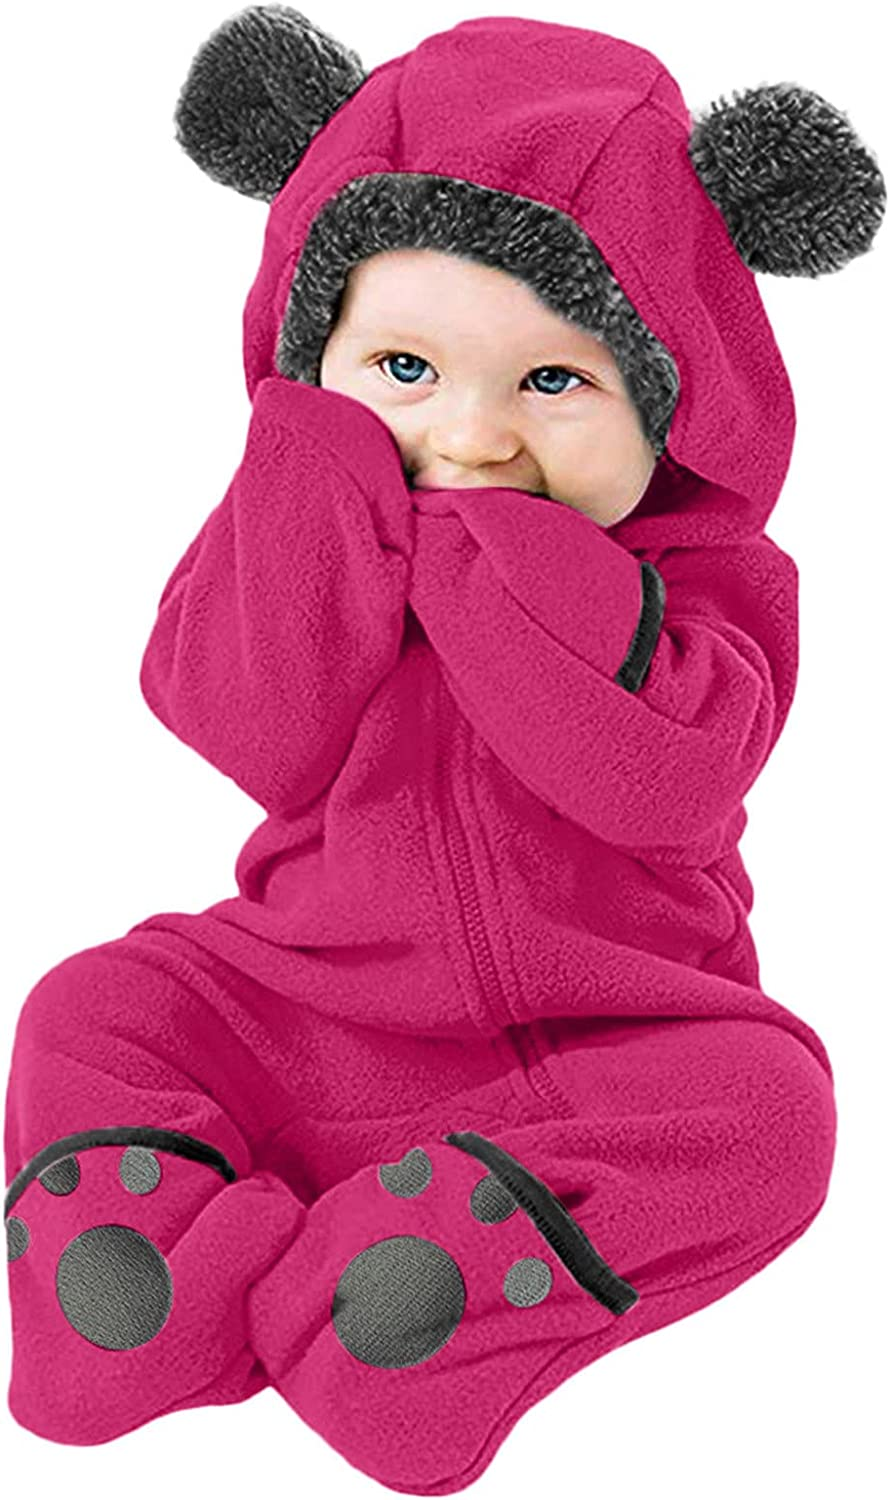 FORESTIME Product Kids Free shipping on posting reviews Fleece Coat Infant Cartoon Solid Baby Hoodie Ears